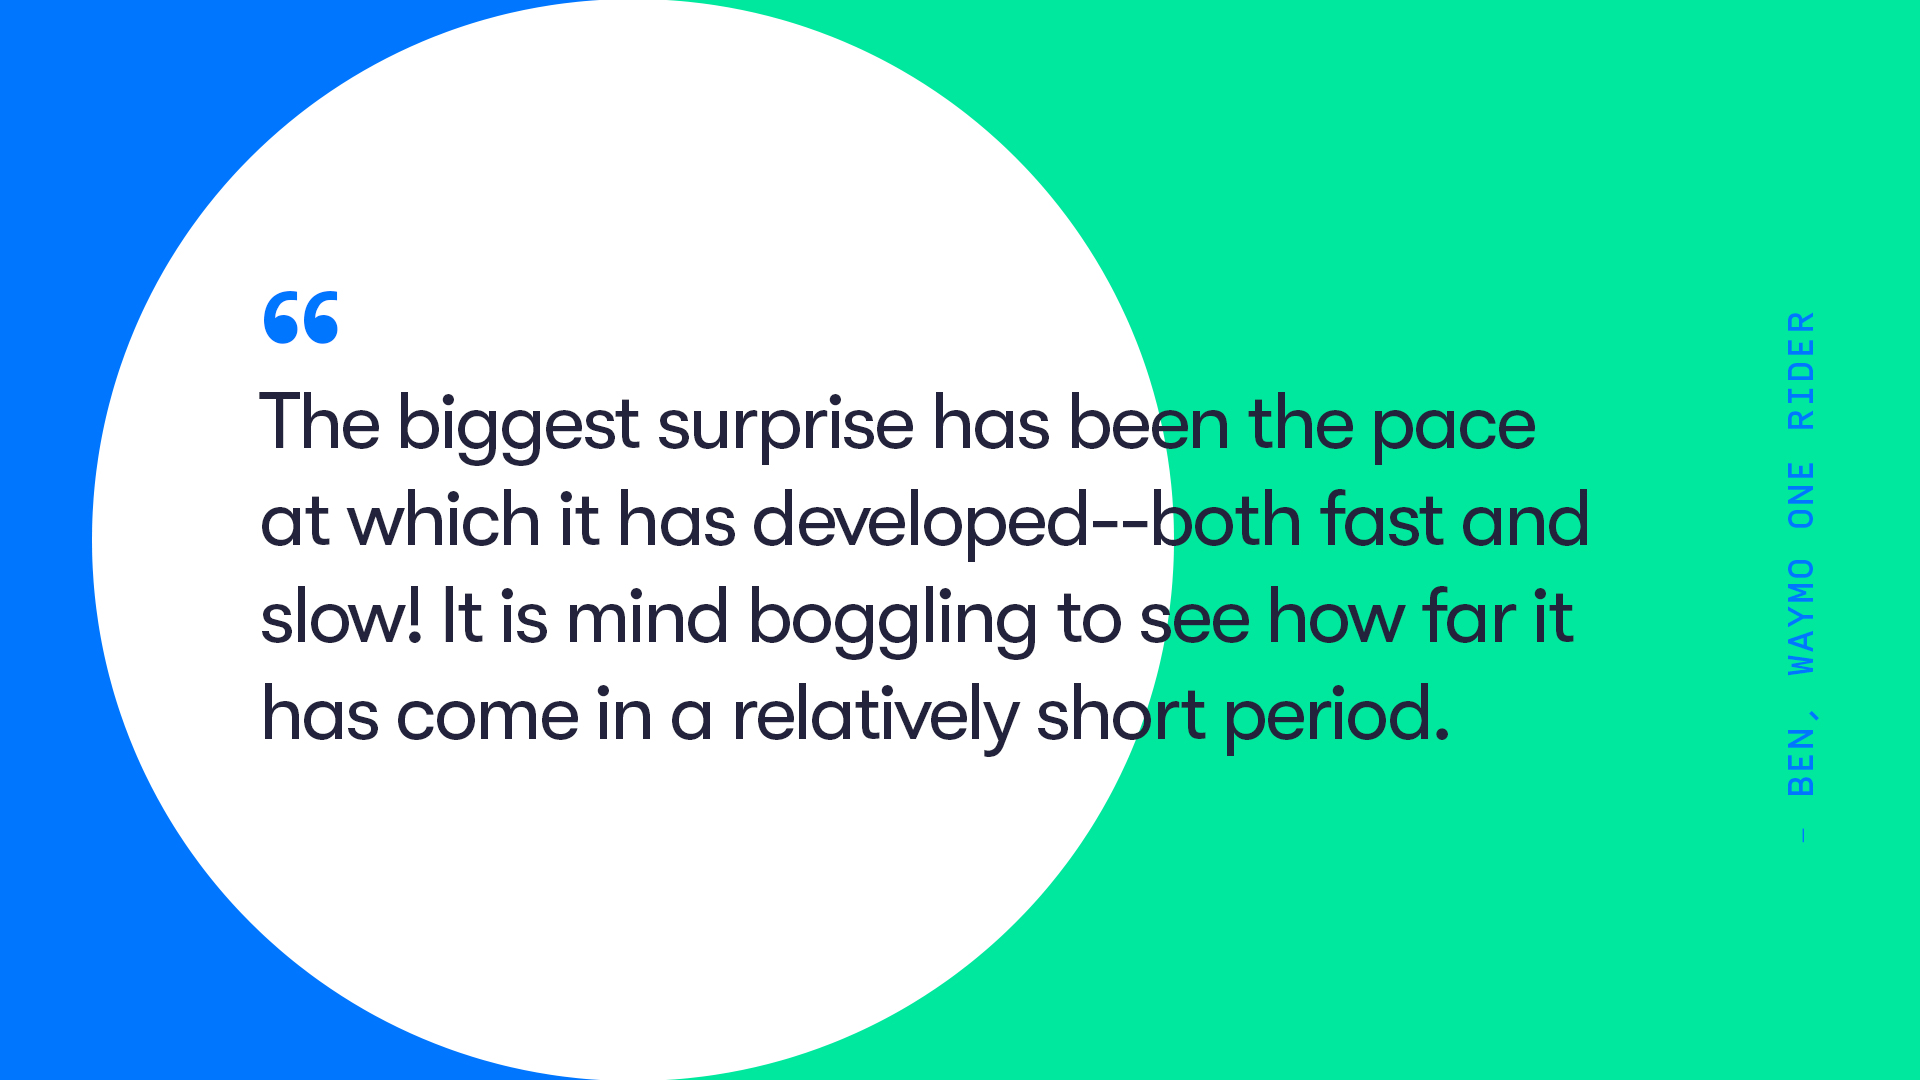 Thumbnail: The biggest surprise has been the pace at which it has developed - both fast and slow! It is mind boggling to see how far it has come in a relatively short period. Ben, Waymo One Rider